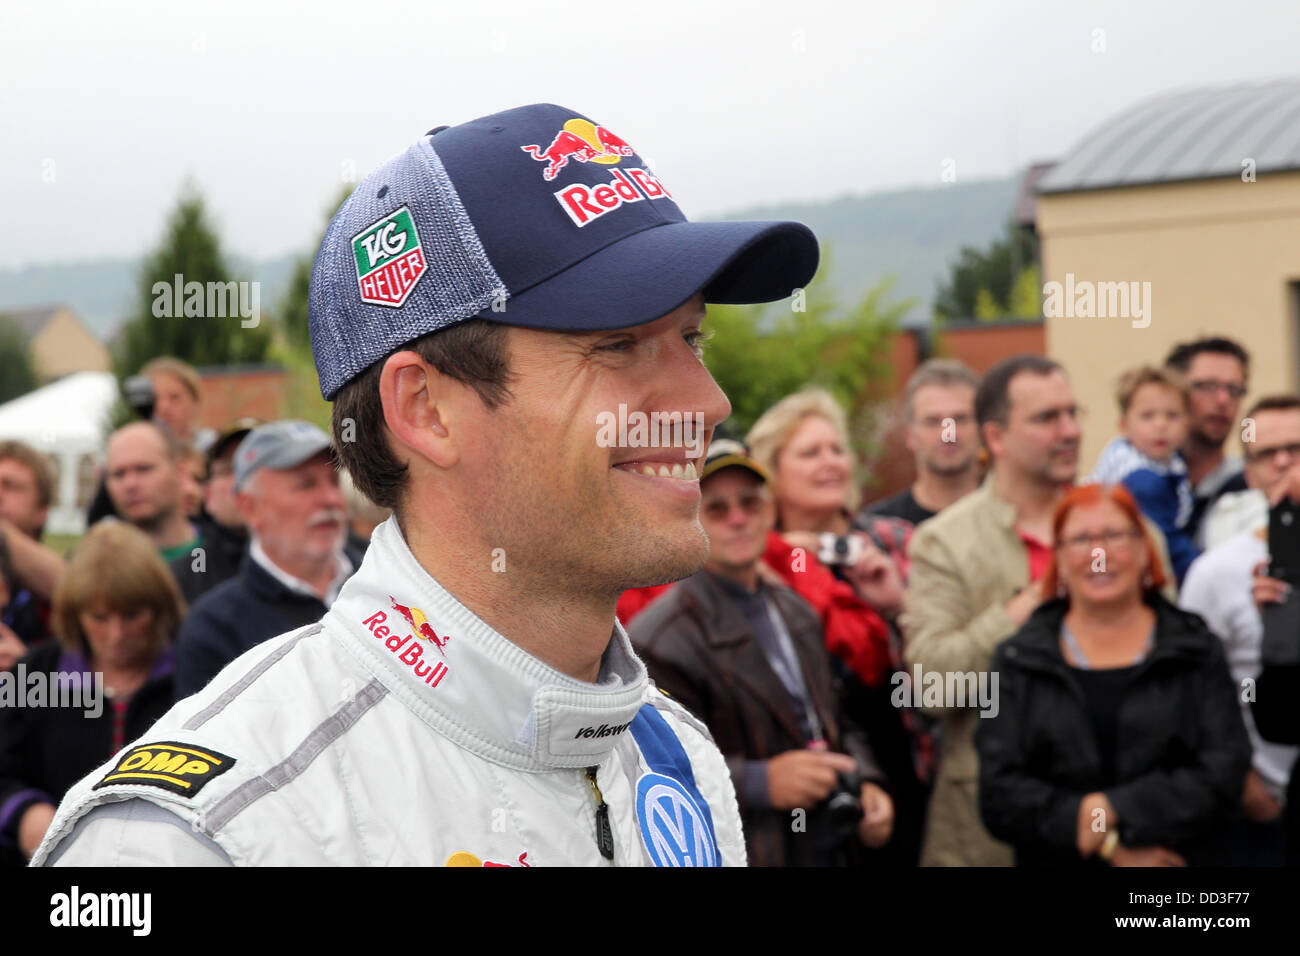 French rally driver Sebastien Ogier walks past spectators after the 15th special stage of the ADAC German Rally - Stock Image